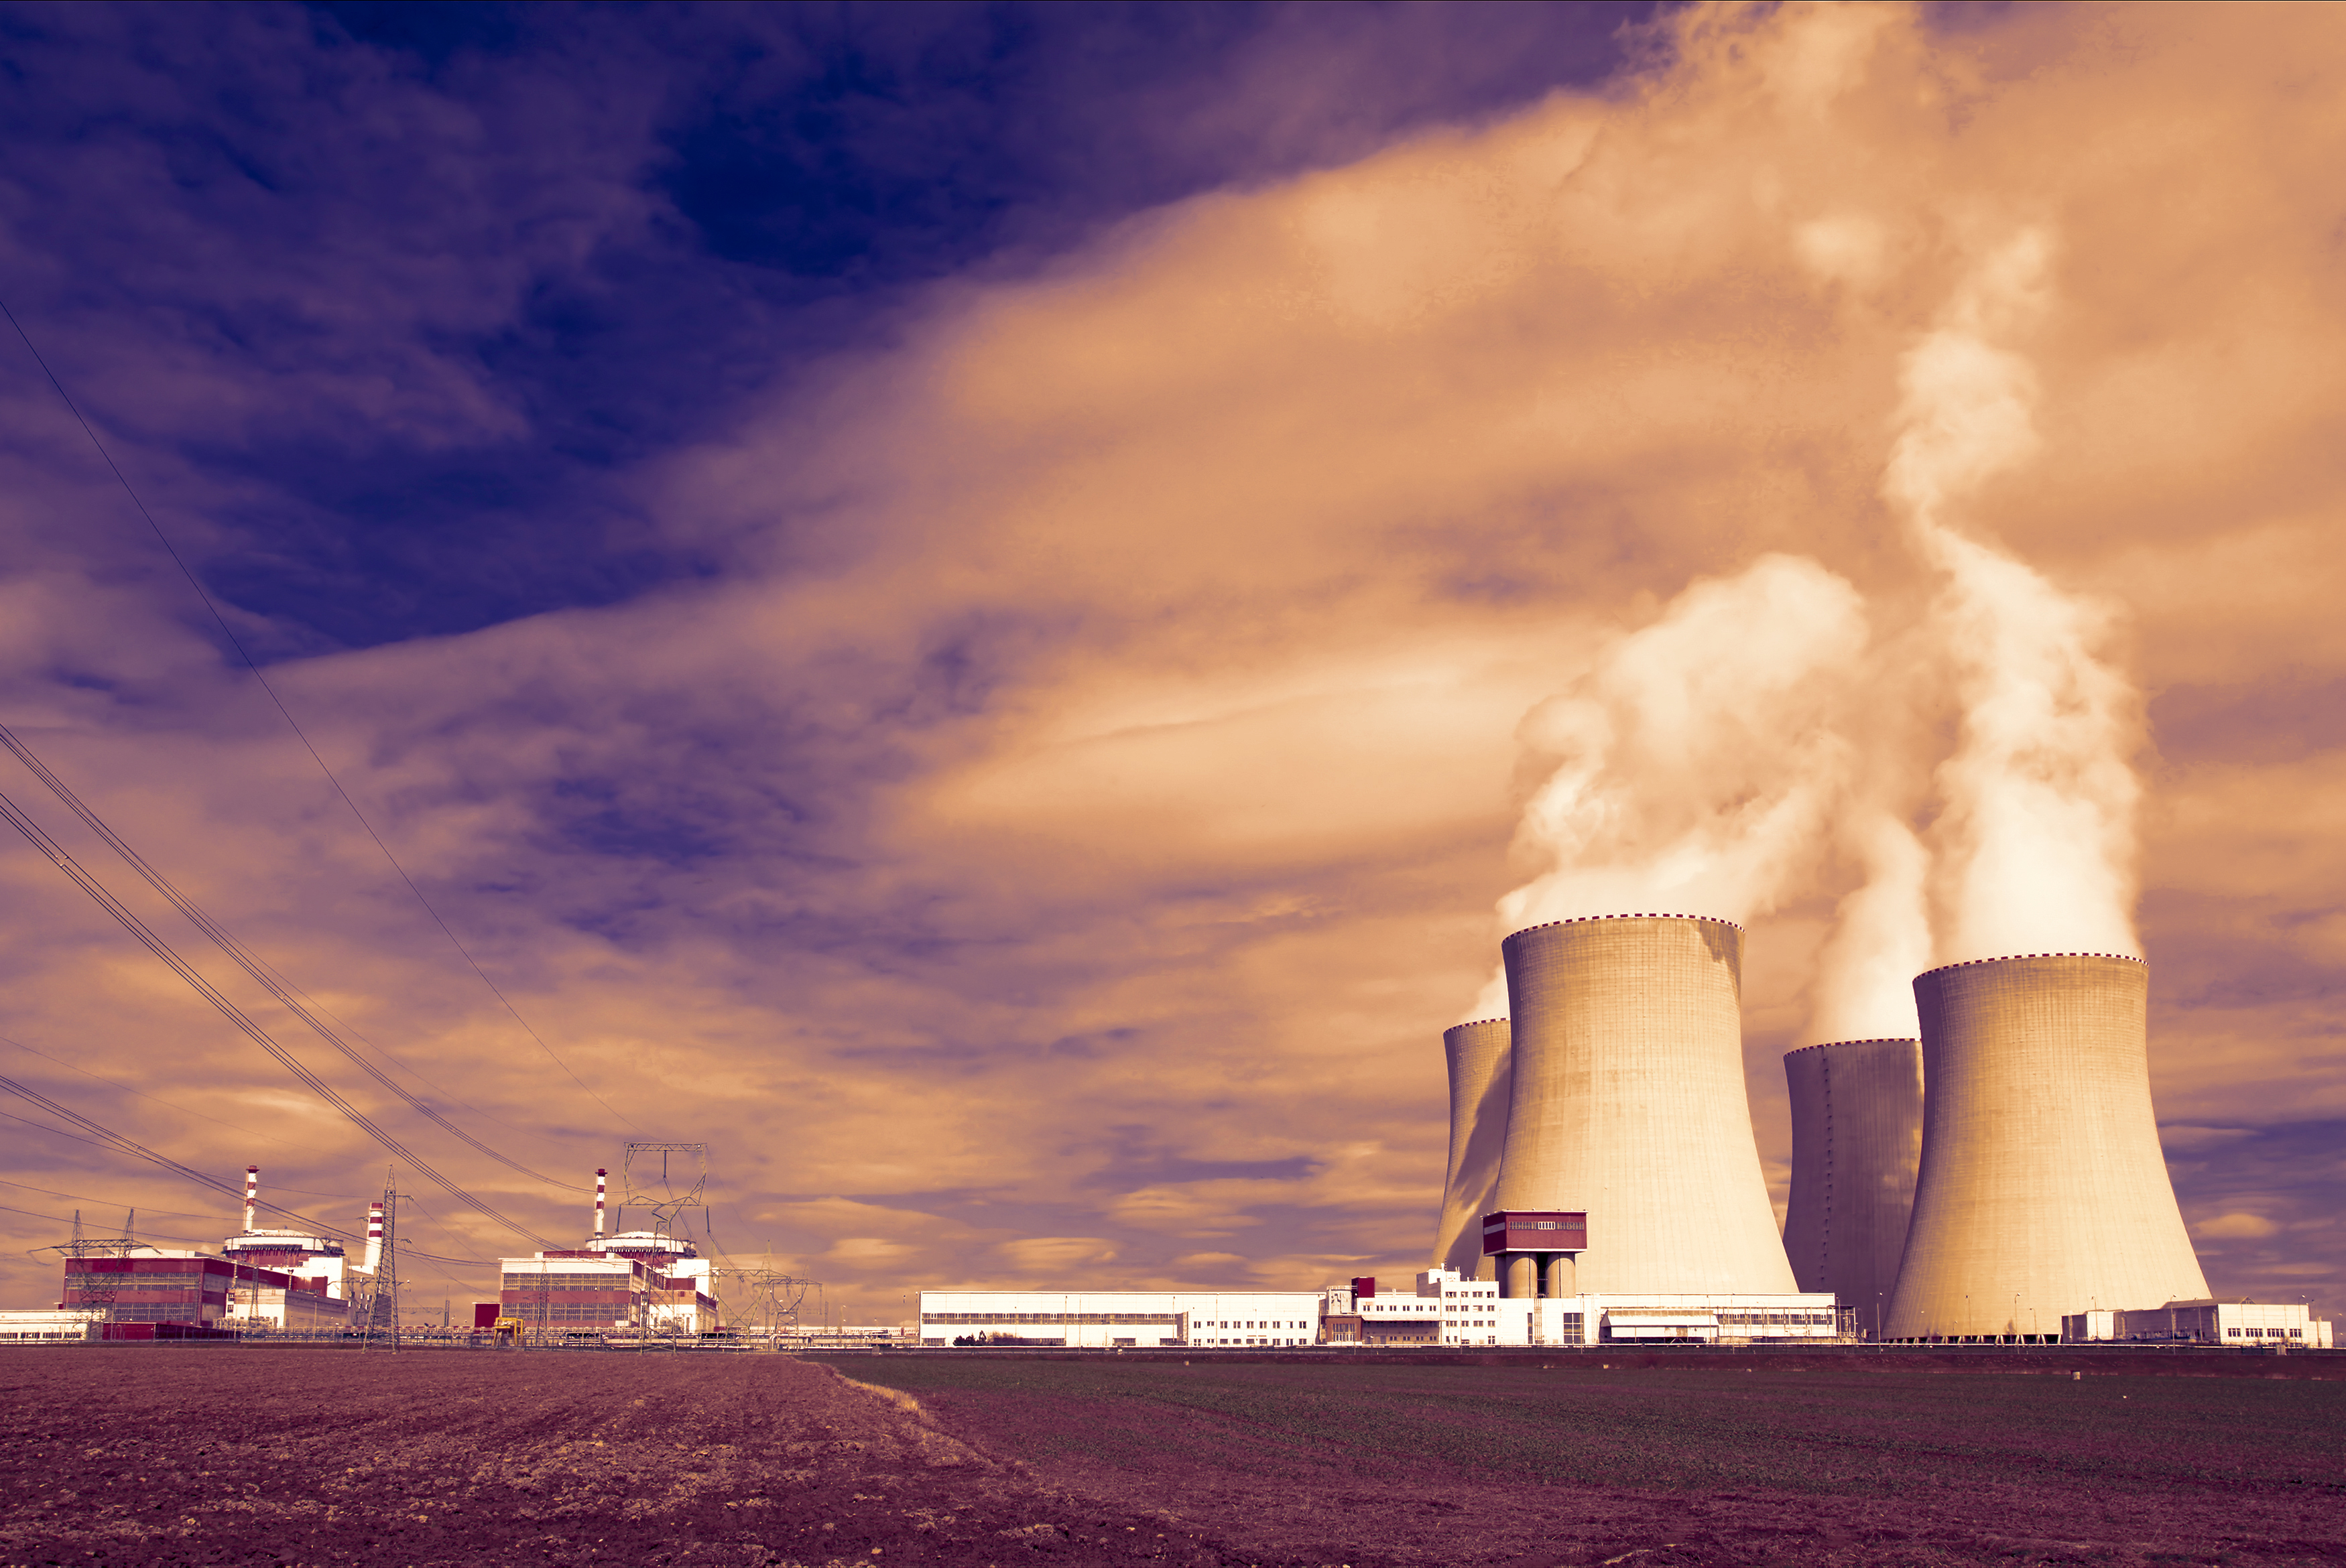 Nuclear Facility. Shutterstock